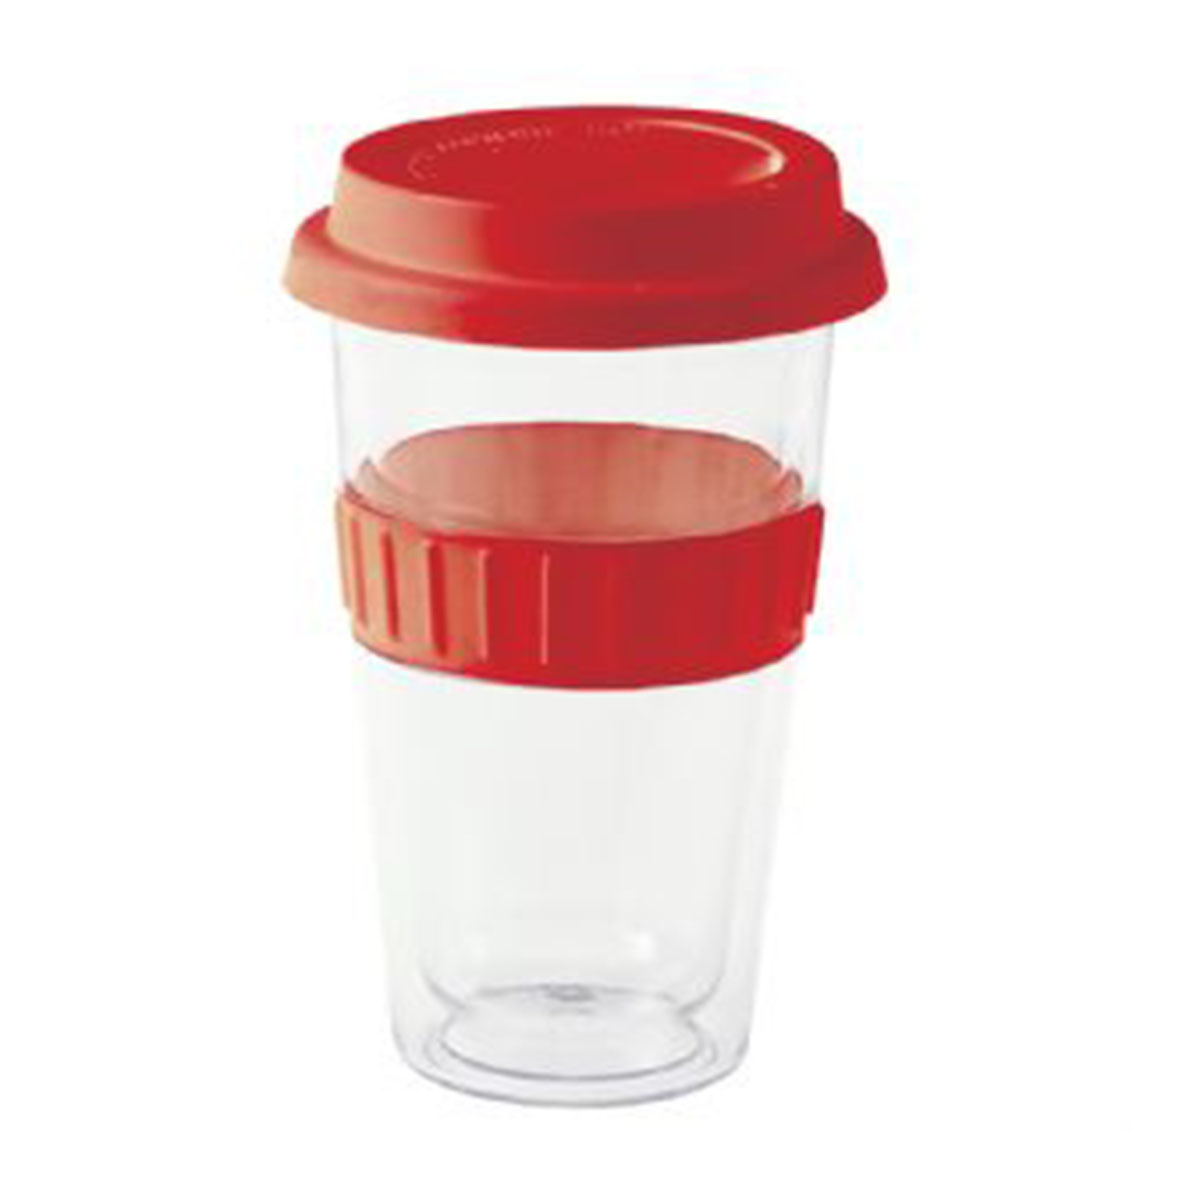 Plastic Double-walled Mug-Red.